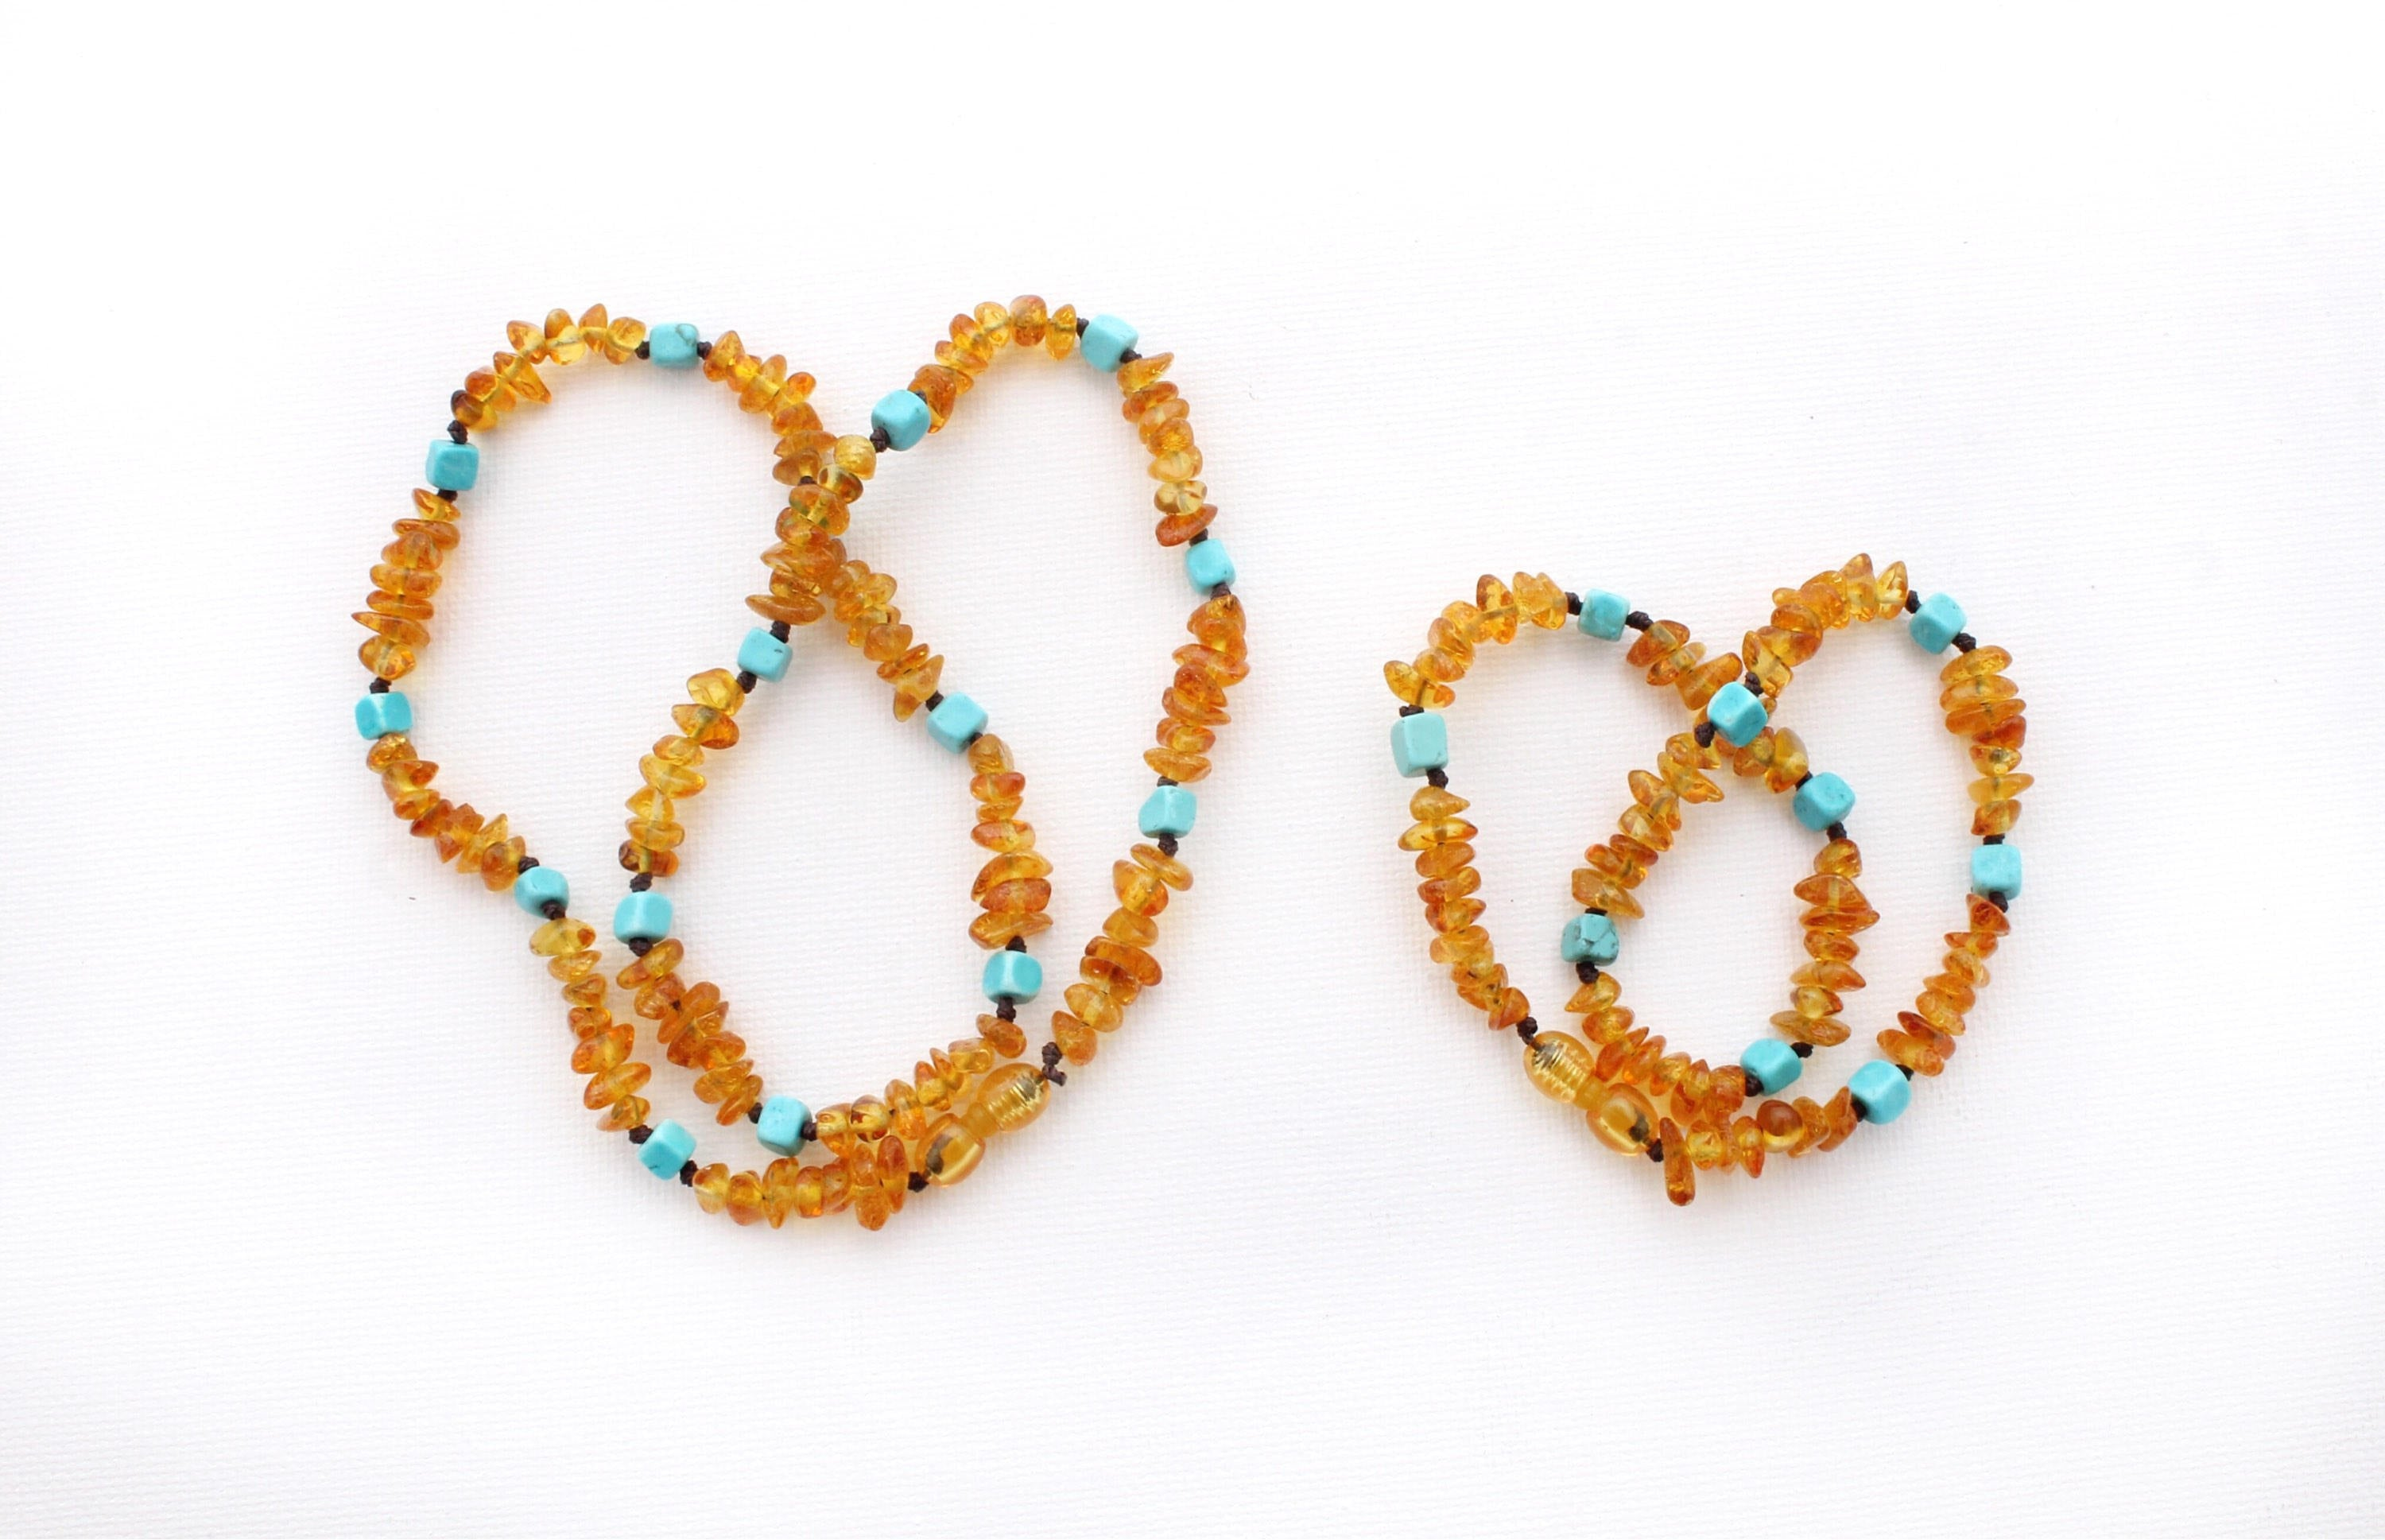 Matching Honey Amber Necklace Set with Howlite Blue Cubes